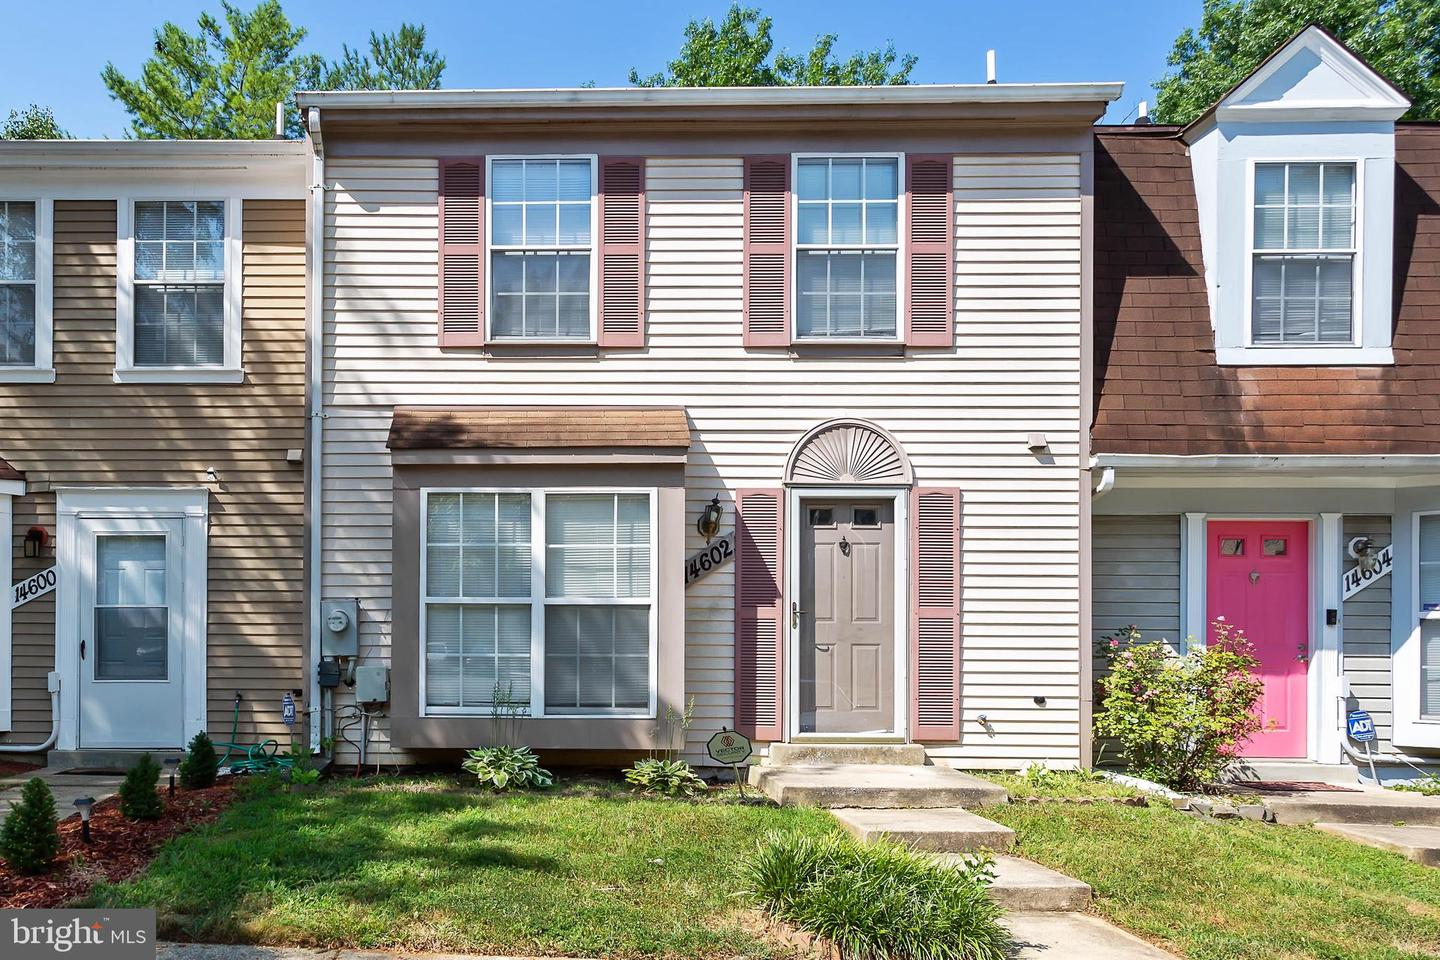 14602 London Ln Bowie Md Townhome Property Listing